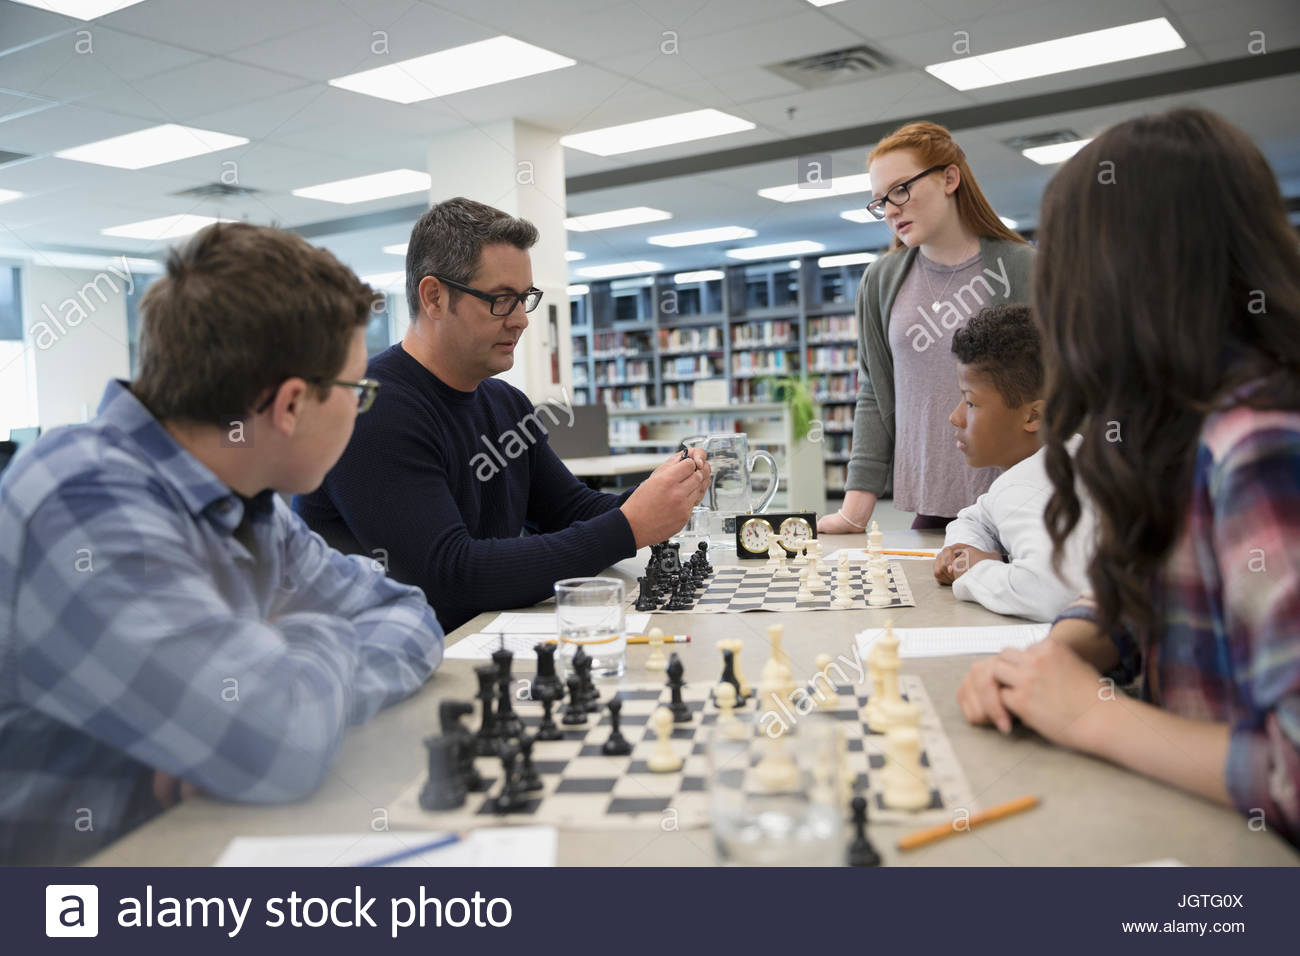 Teacher leading chess club meeting in library - Stock Image